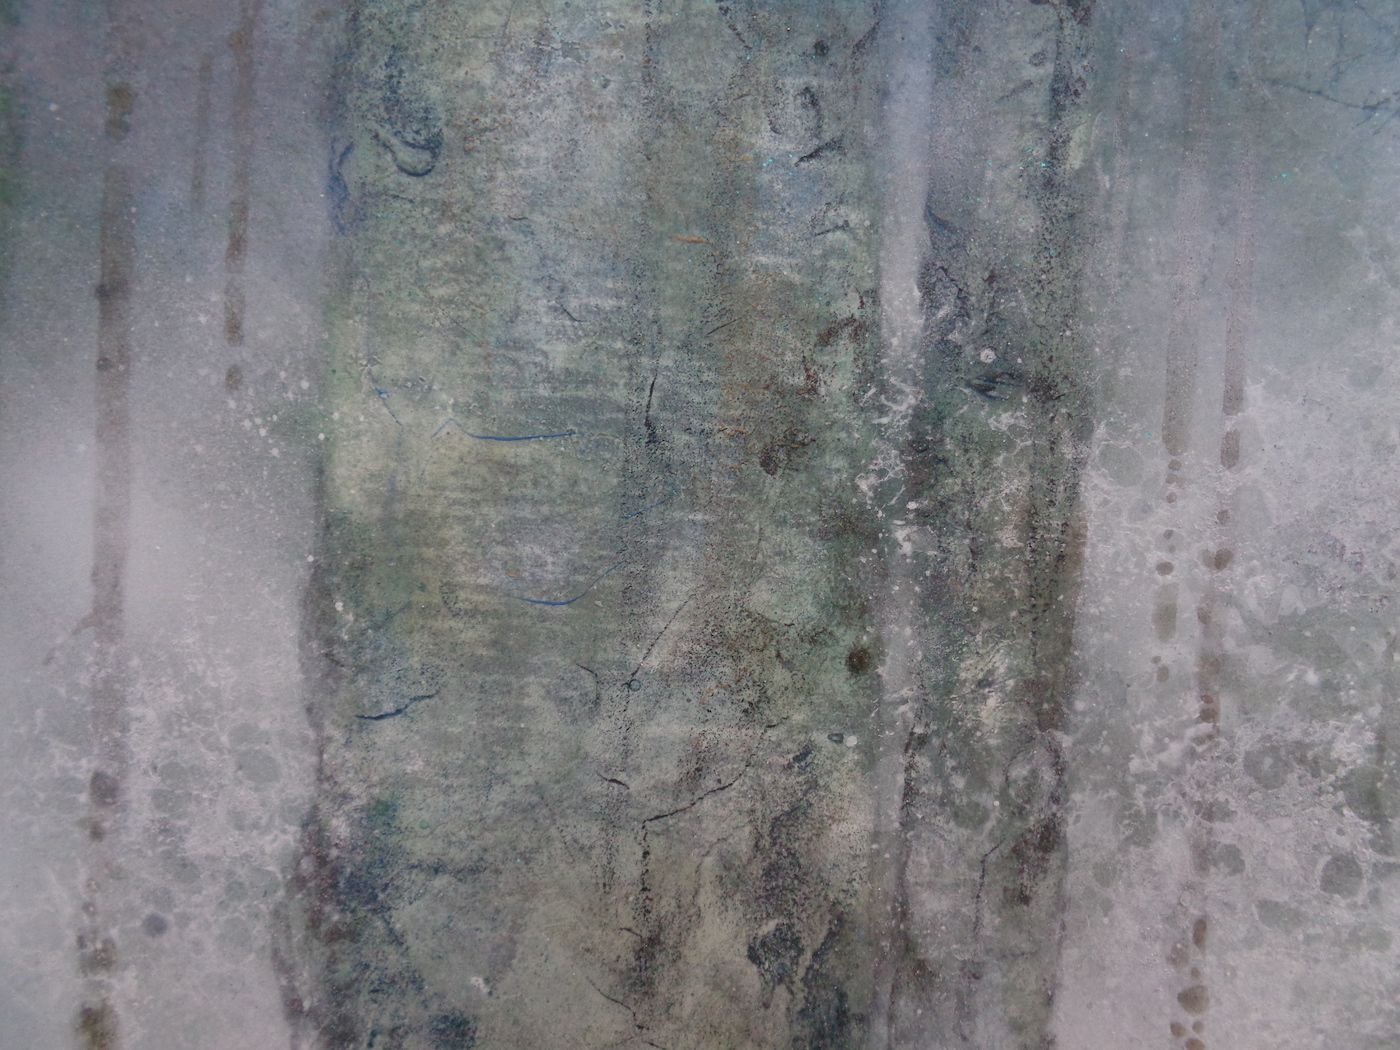 Plenitude II,Chen Yiching,Contemporary painting, detail 3